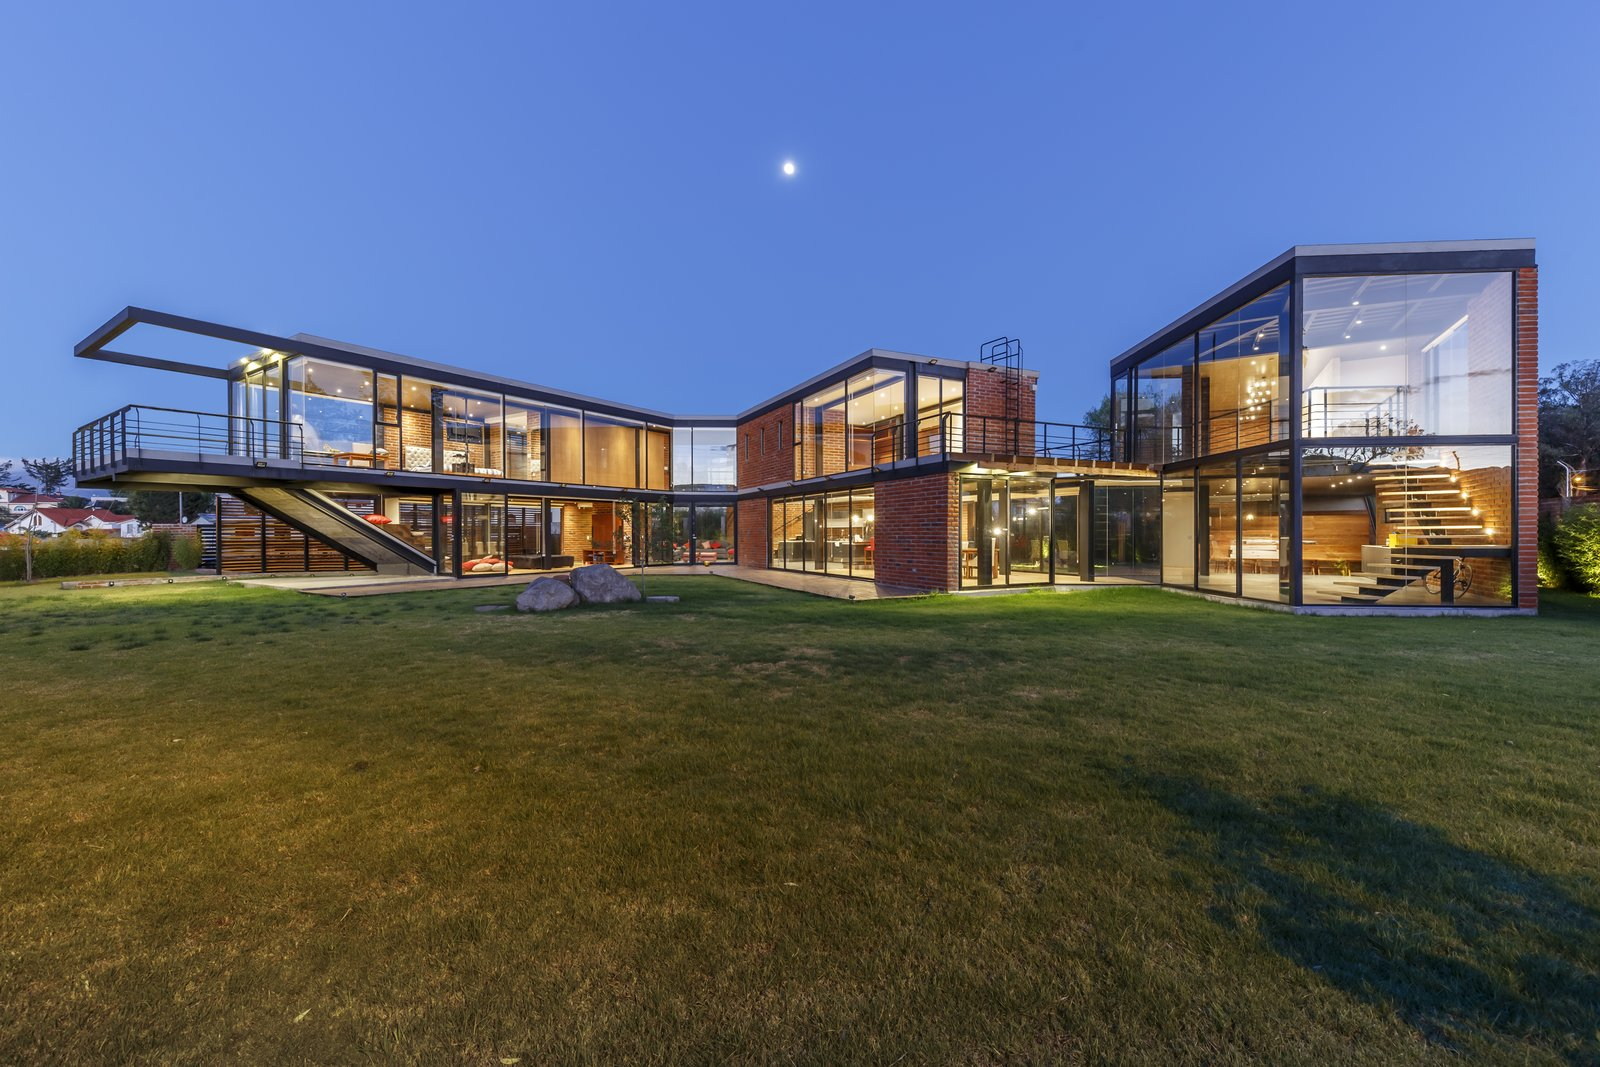 Exterior, Brick, Glass, Metal, Flat, House, and Wood  Best Exterior Glass Brick Wood Metal Photos from A Family Lives Harmoniously Together in This Captivating Multi-Generational Home